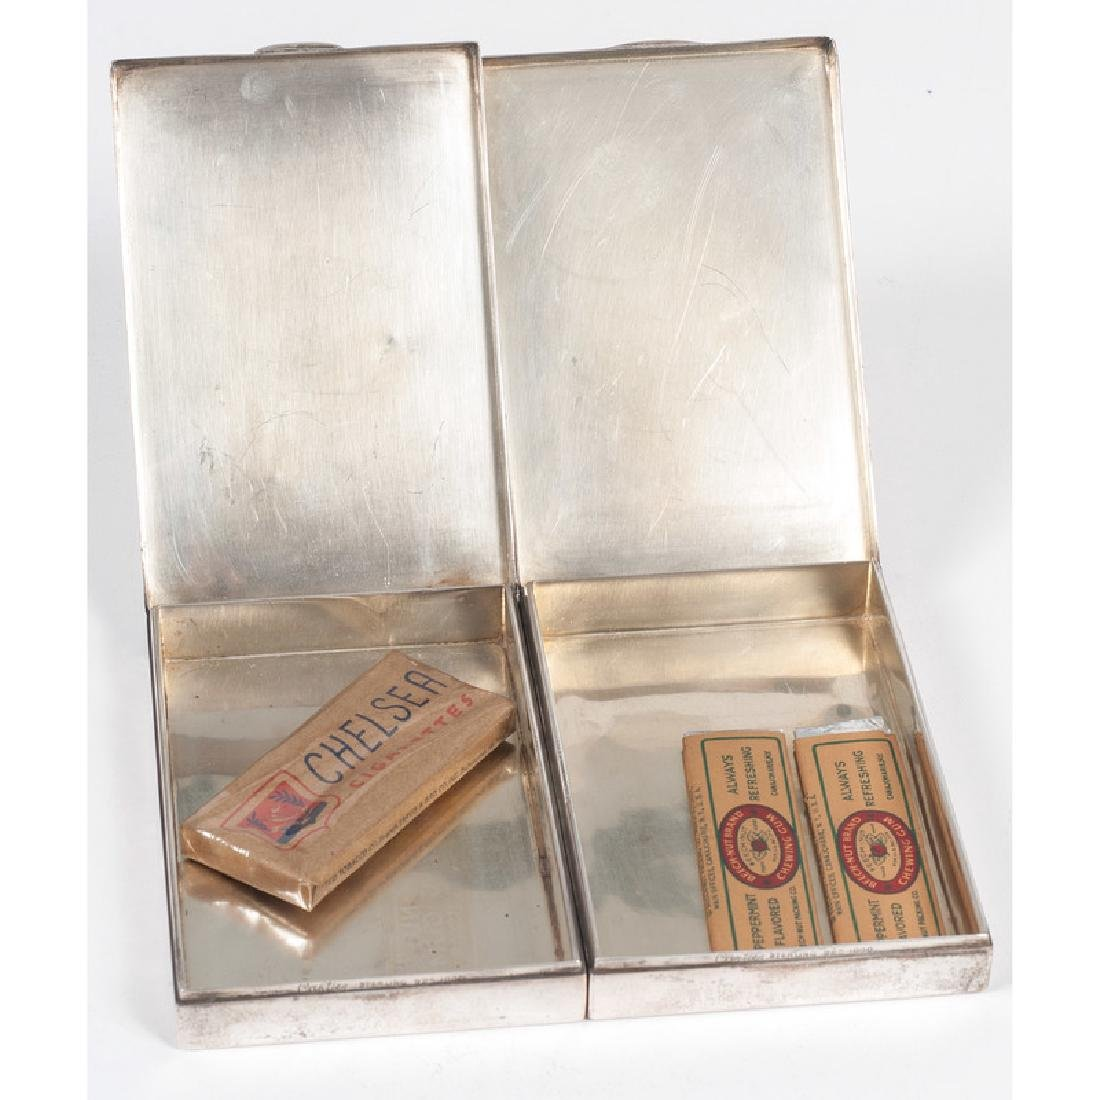 Cartier Sterling Silver Cigarette Boxes - 2